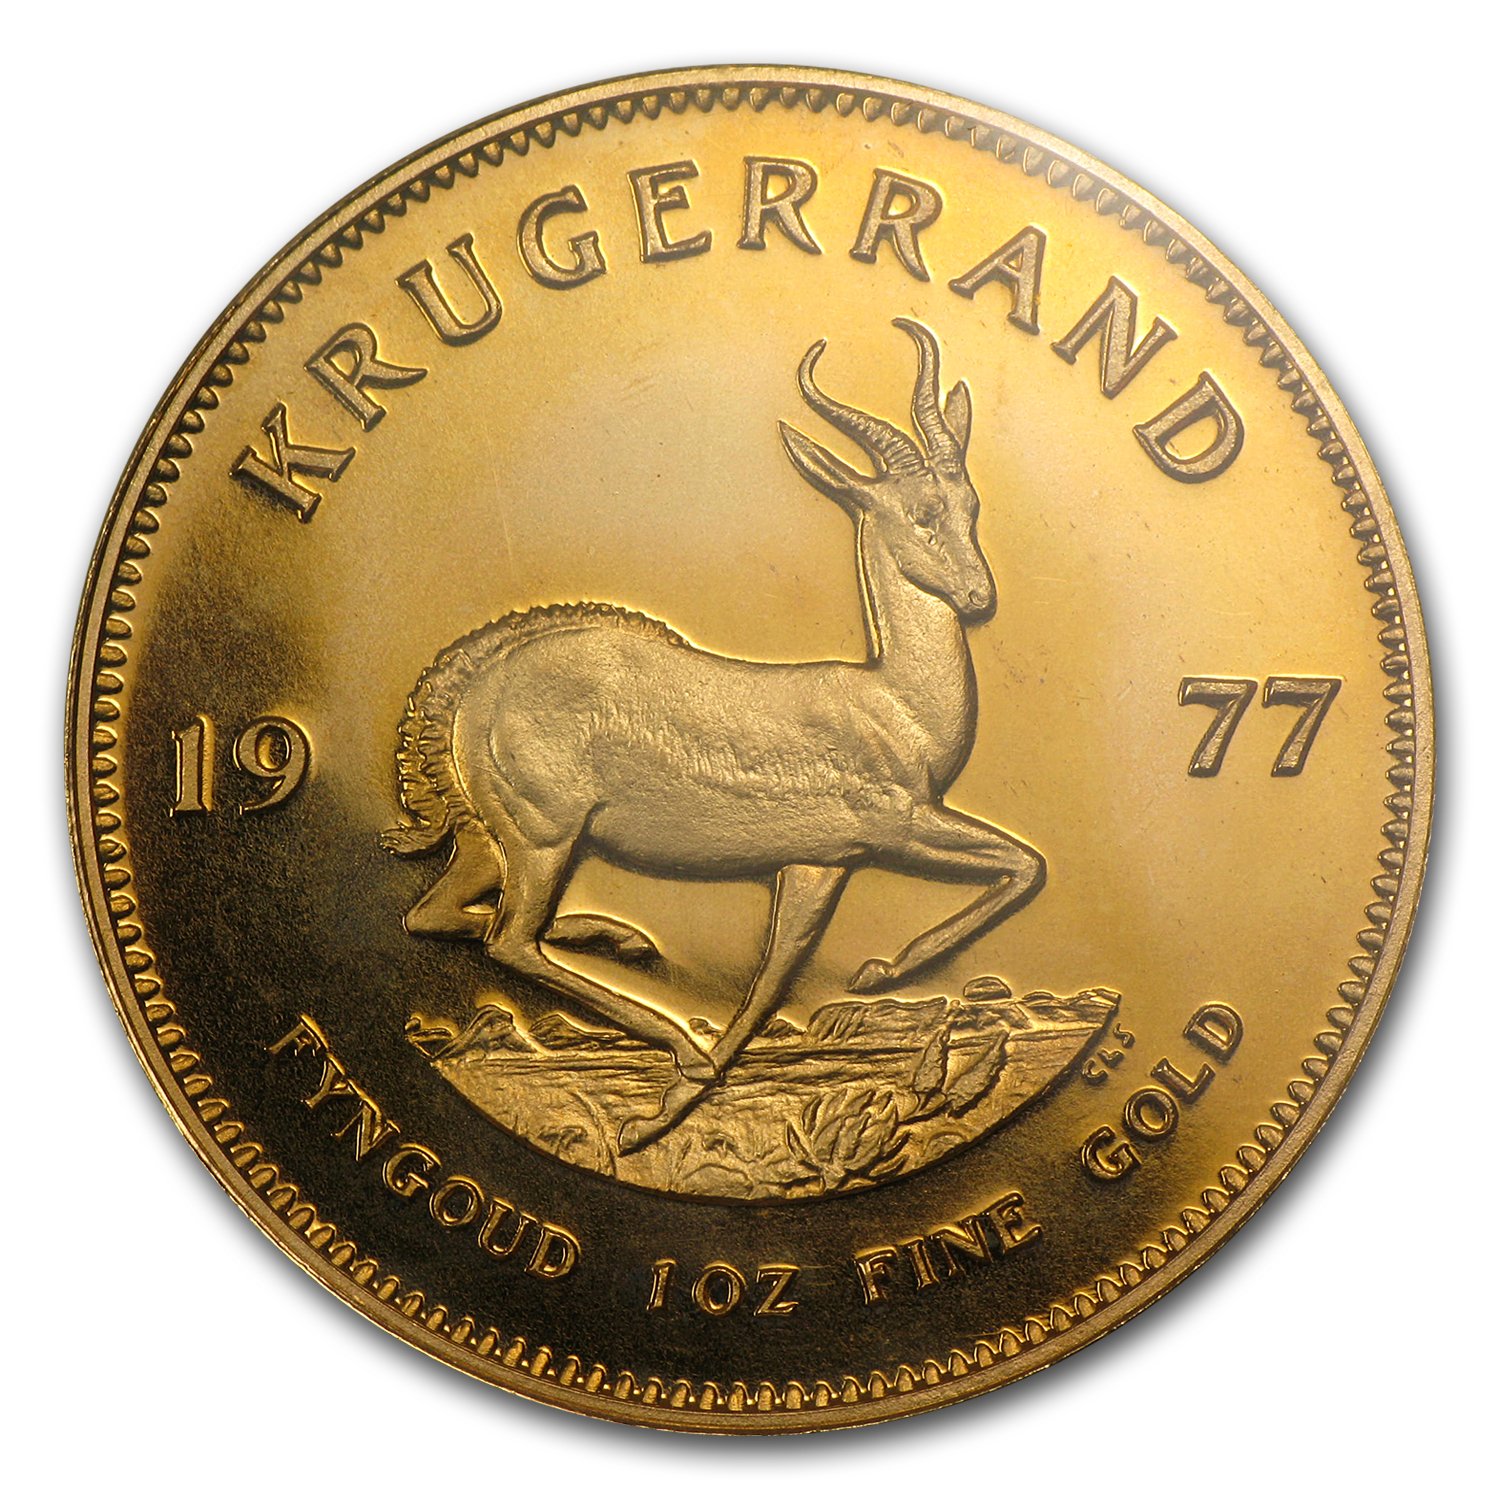 1977 South Africa 1 oz Gold Krugerrand PF-68 NGC